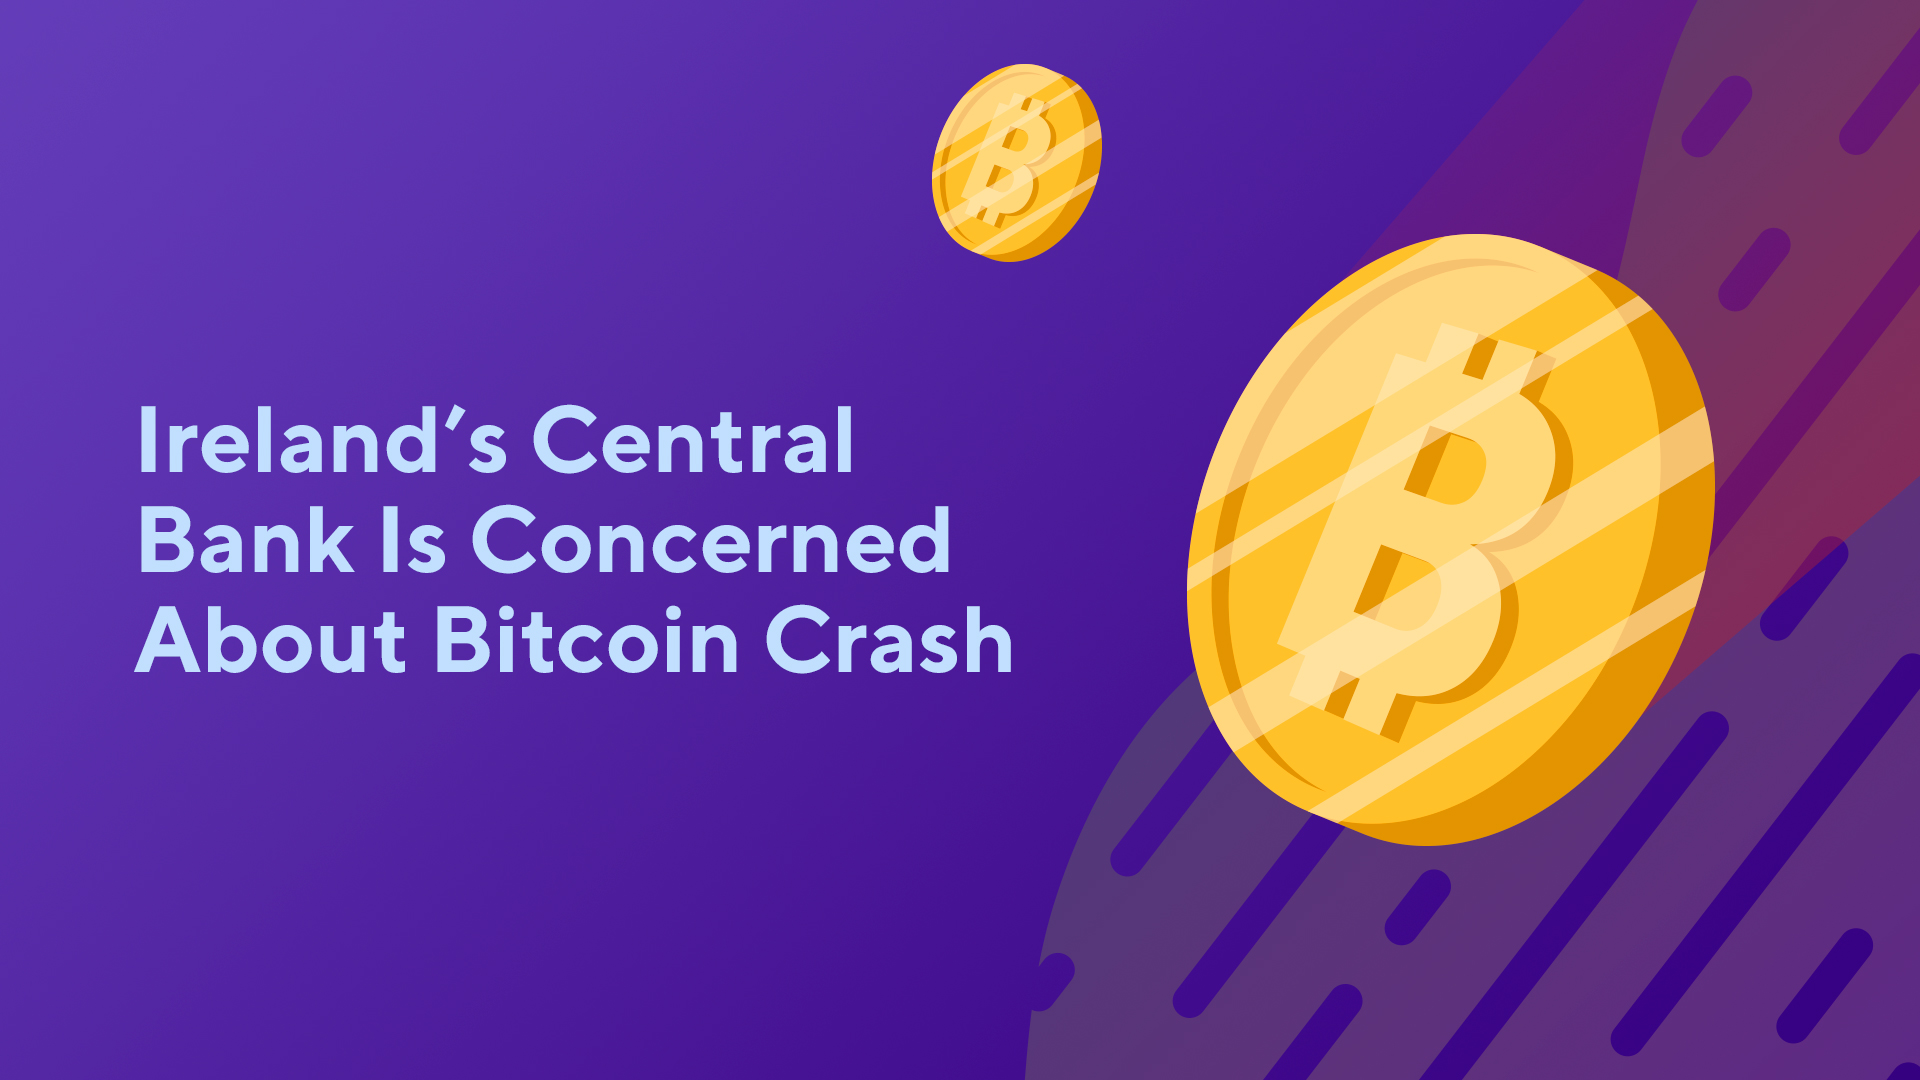 Ireland's Central Bank Is Concerned About Bitcoin Crash